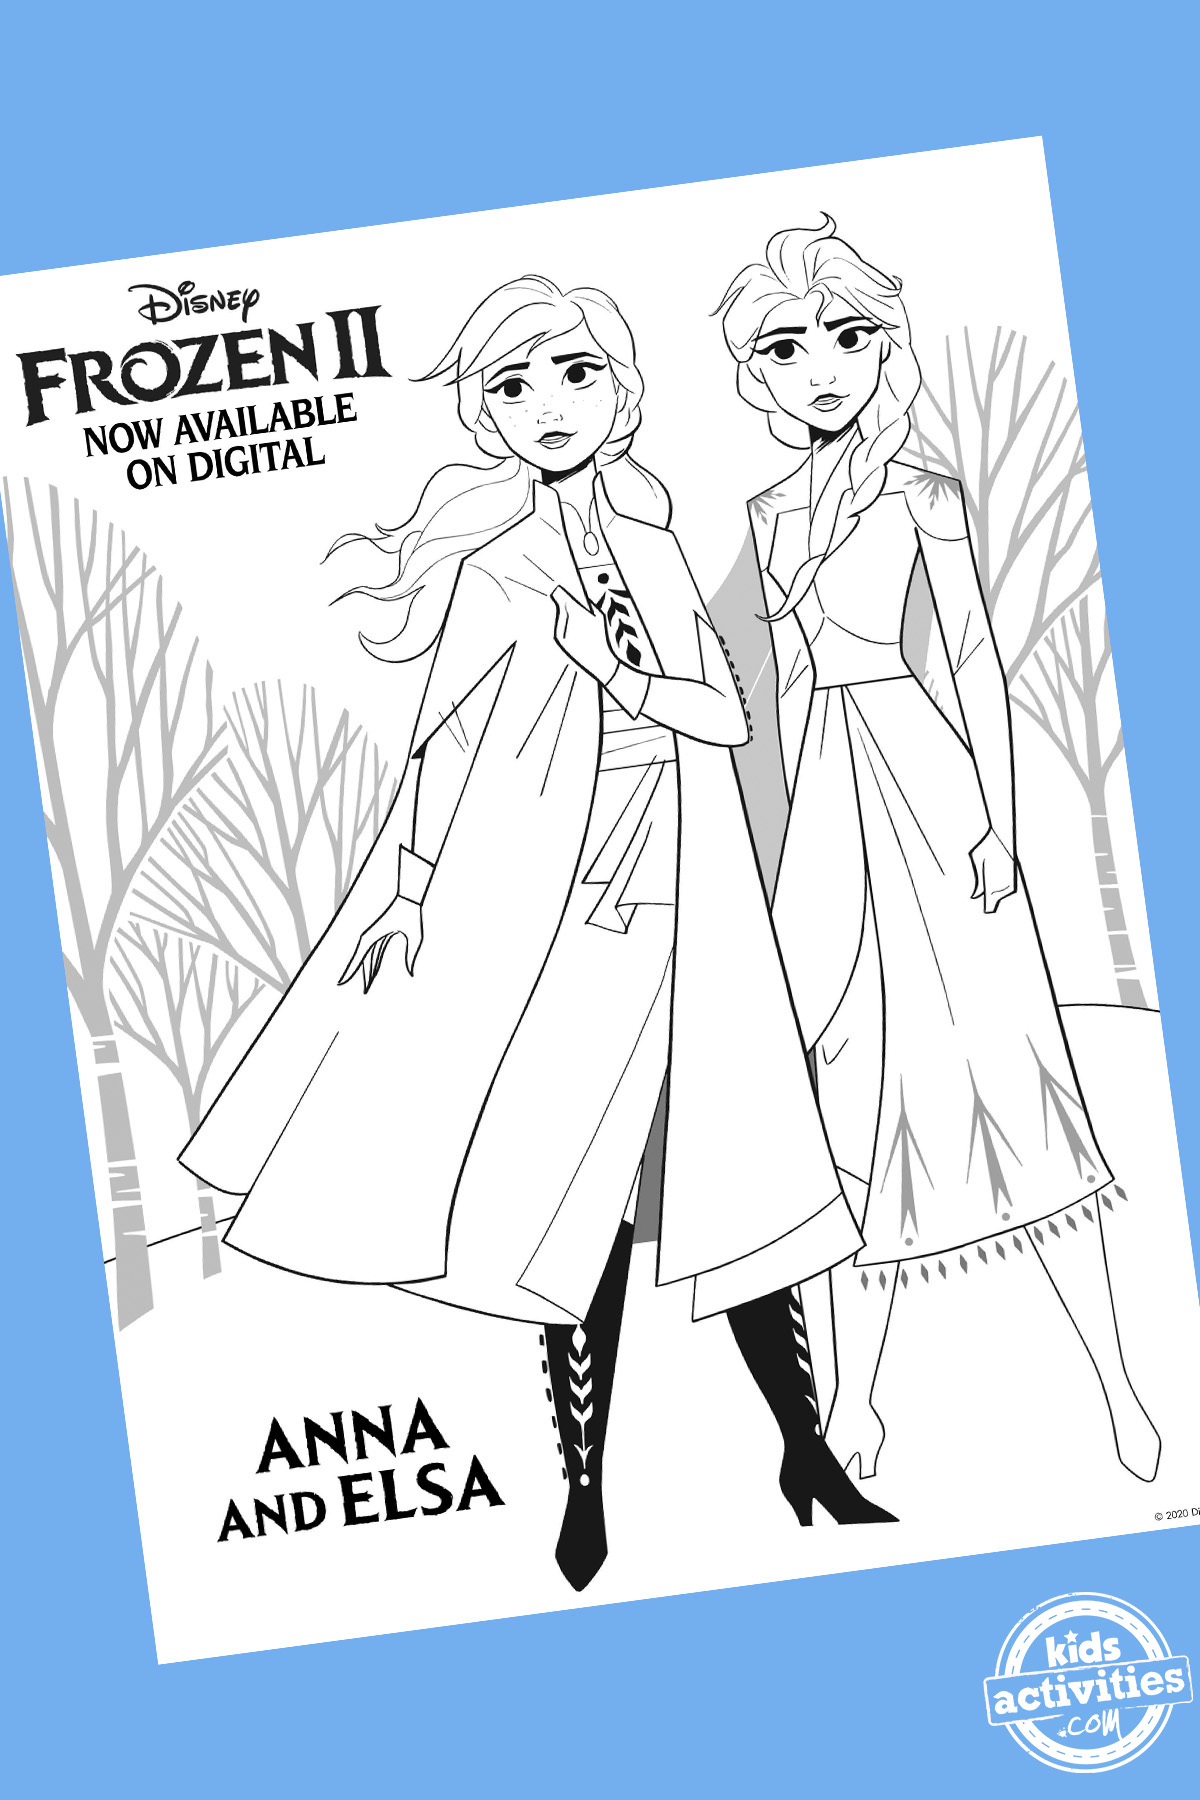 Frozen Coloring Pages Featuring New Characters from Frozen 2!